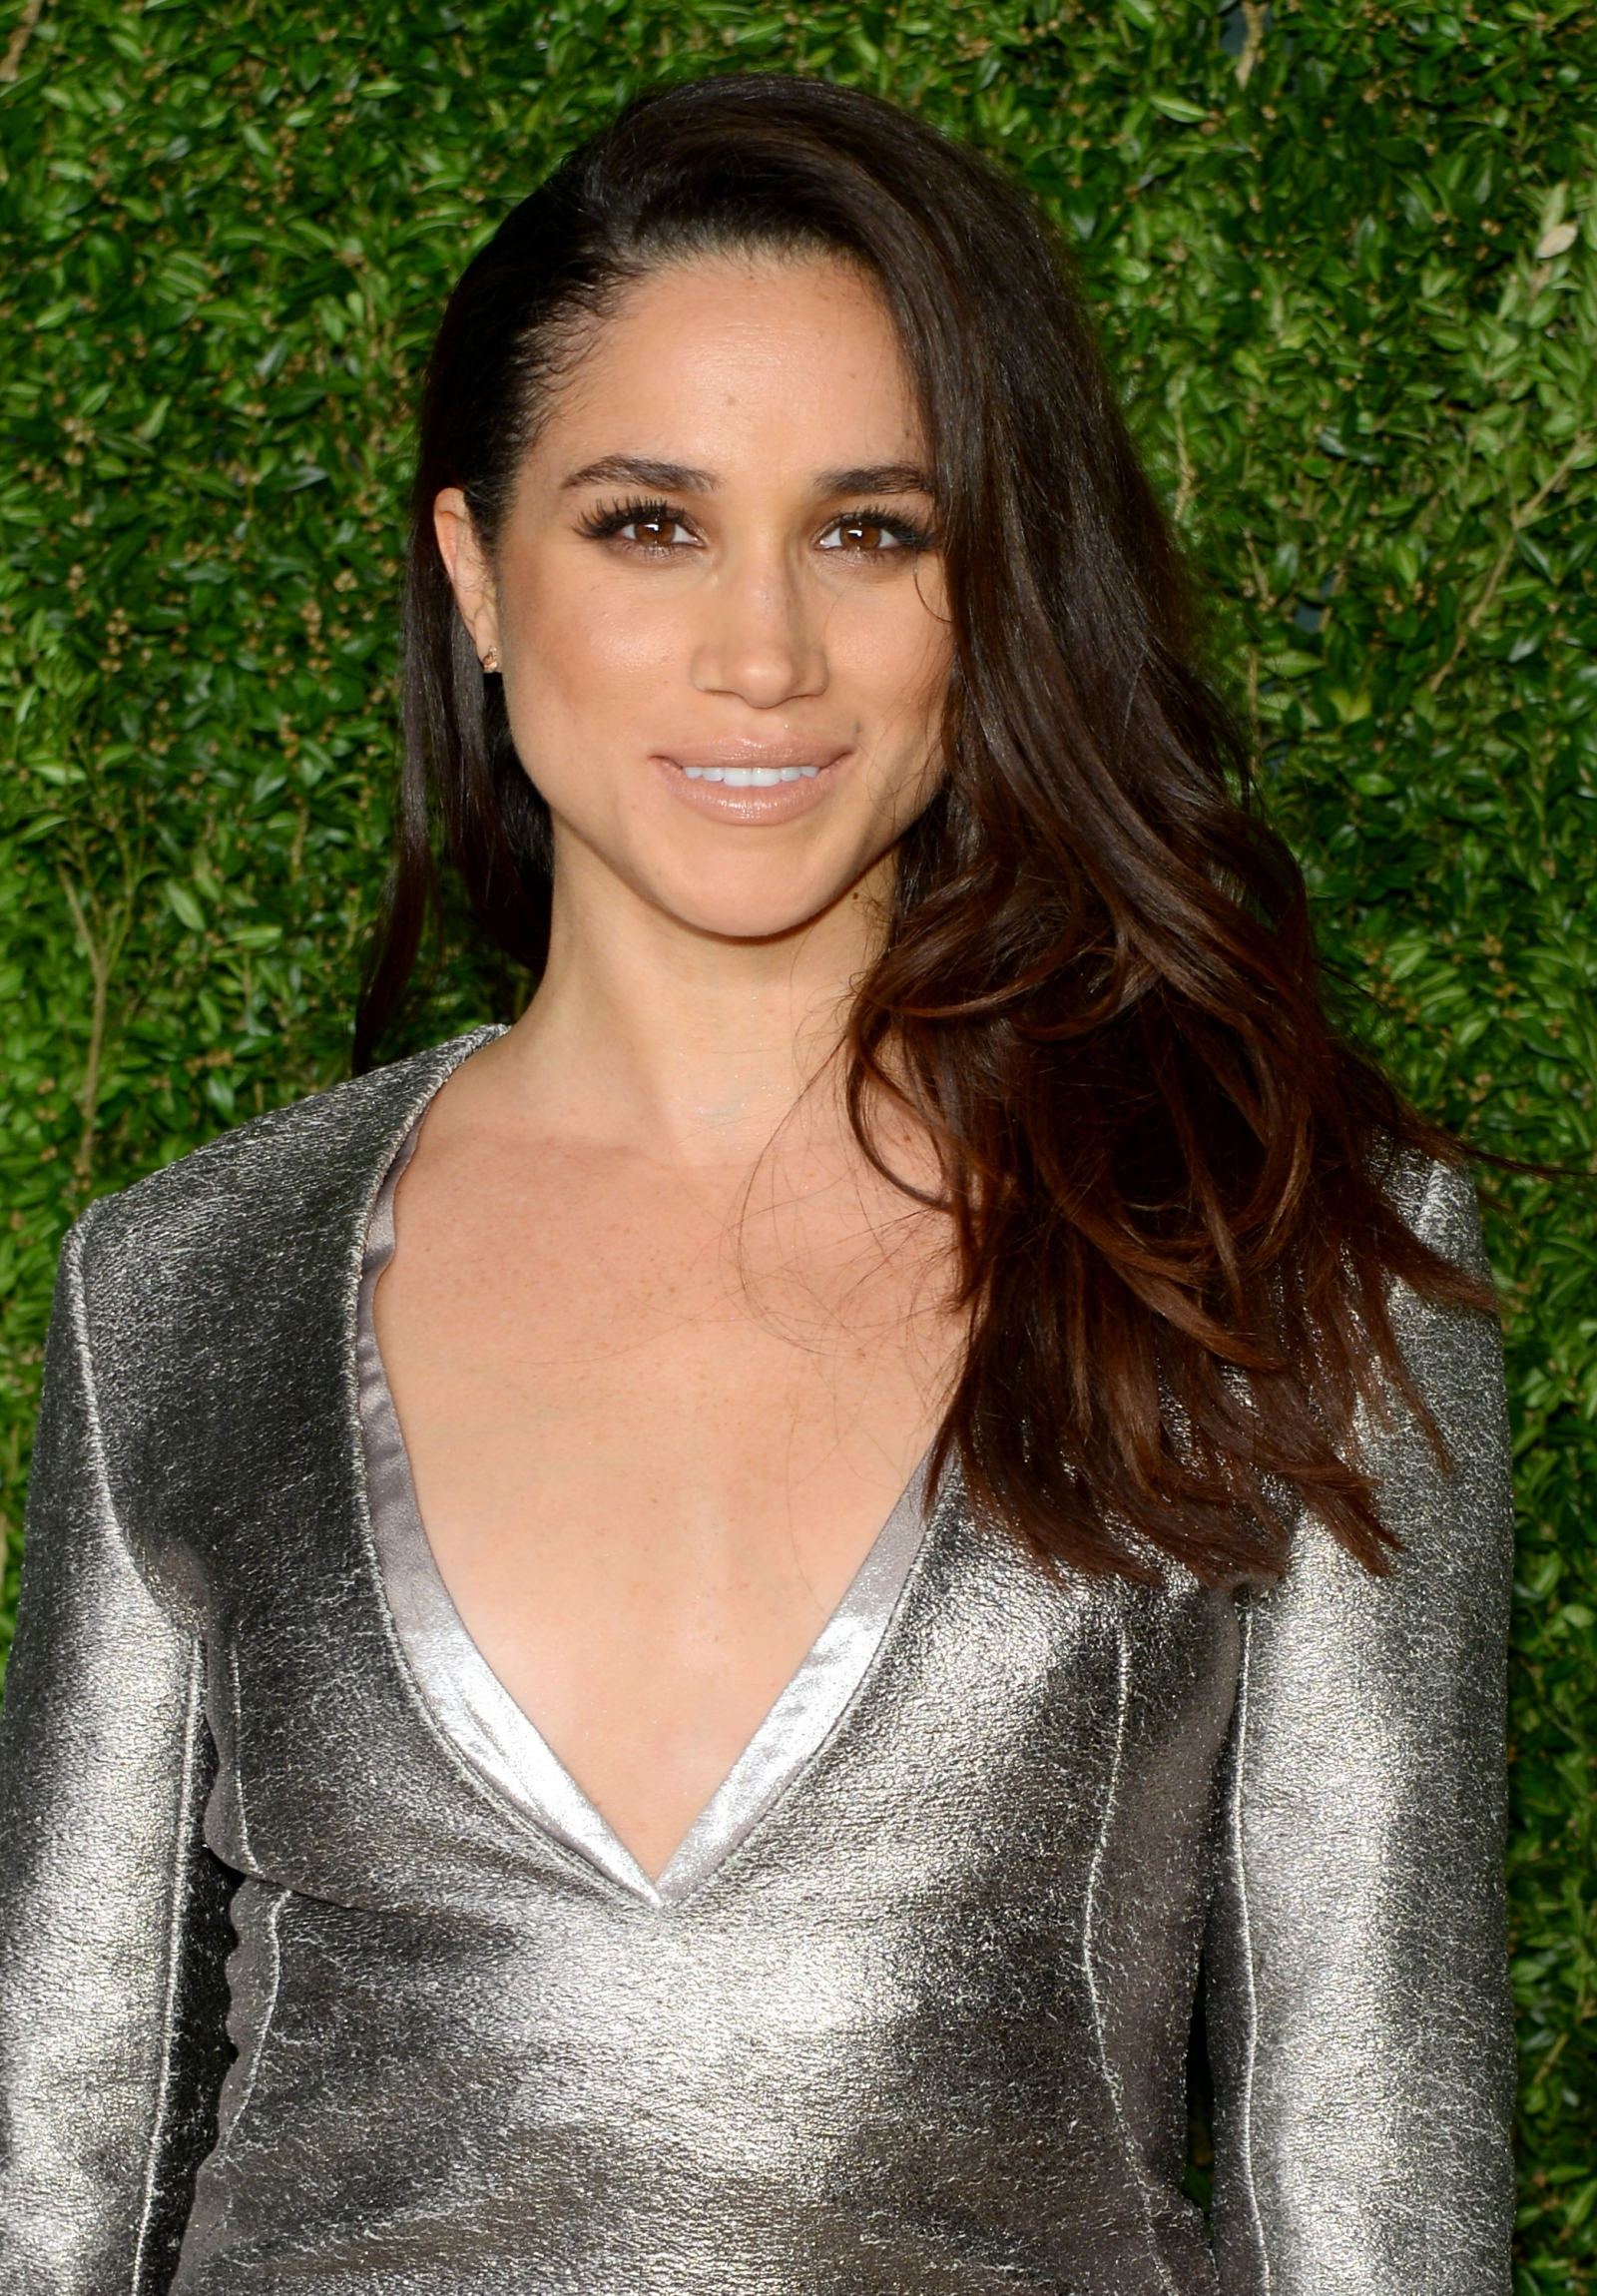 meghan markle - photo #20